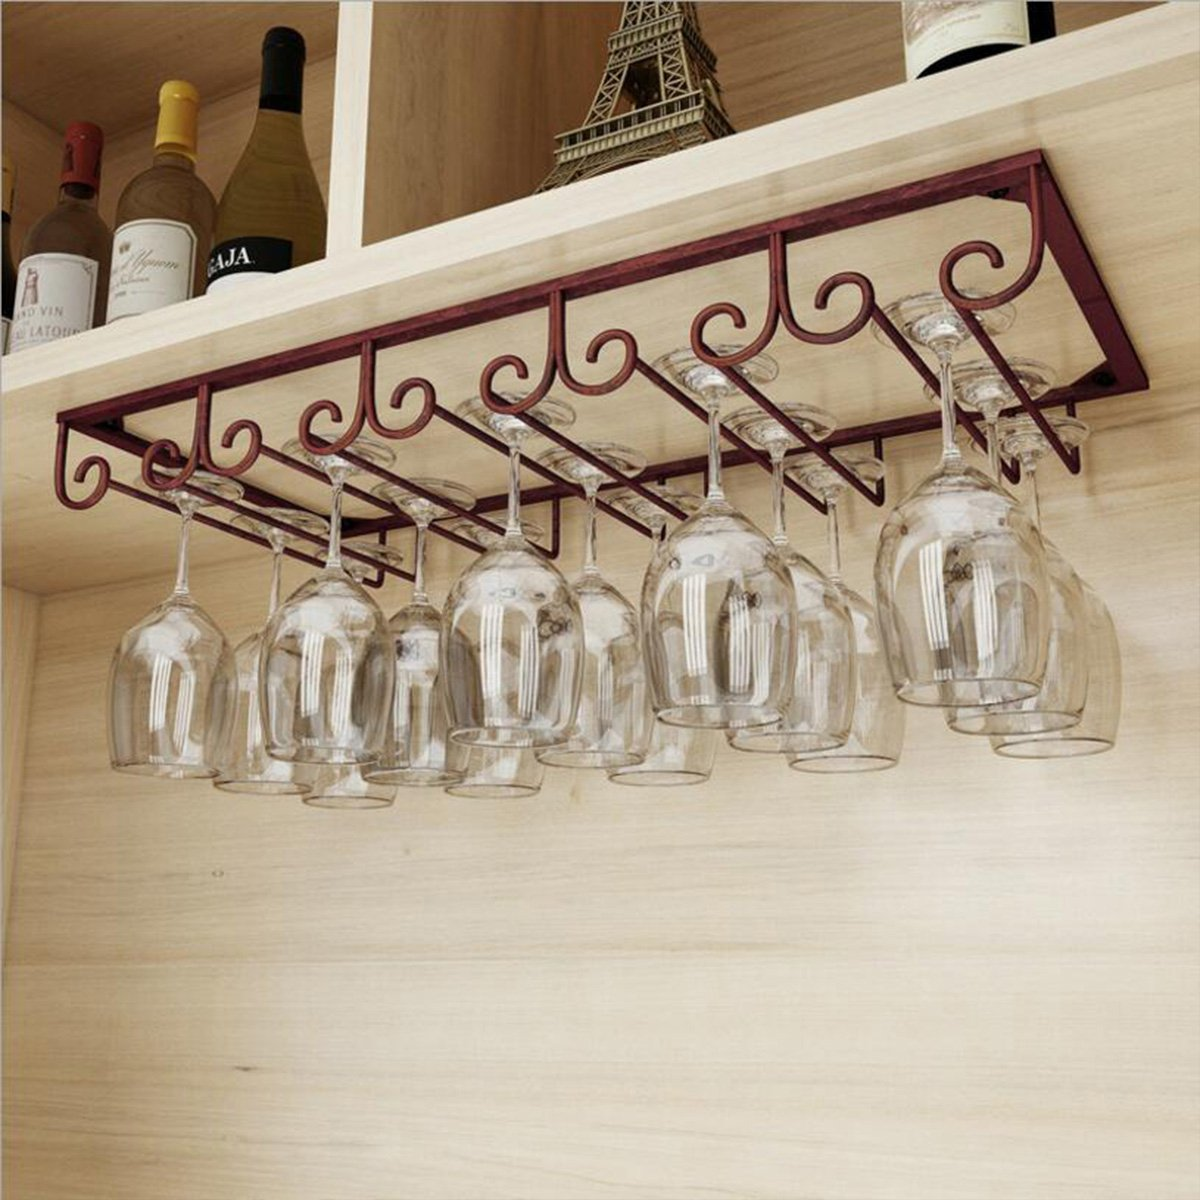 MZGH ISLAND Under Cabinet Hanging Shelves 5 Slots,Vintage Wine Glass Rack,Organizer Storage Cup,Goblet Drying Shelf,Stemware Holder for Home Bar,Holds up to 10-15 Glasses(Bronze)